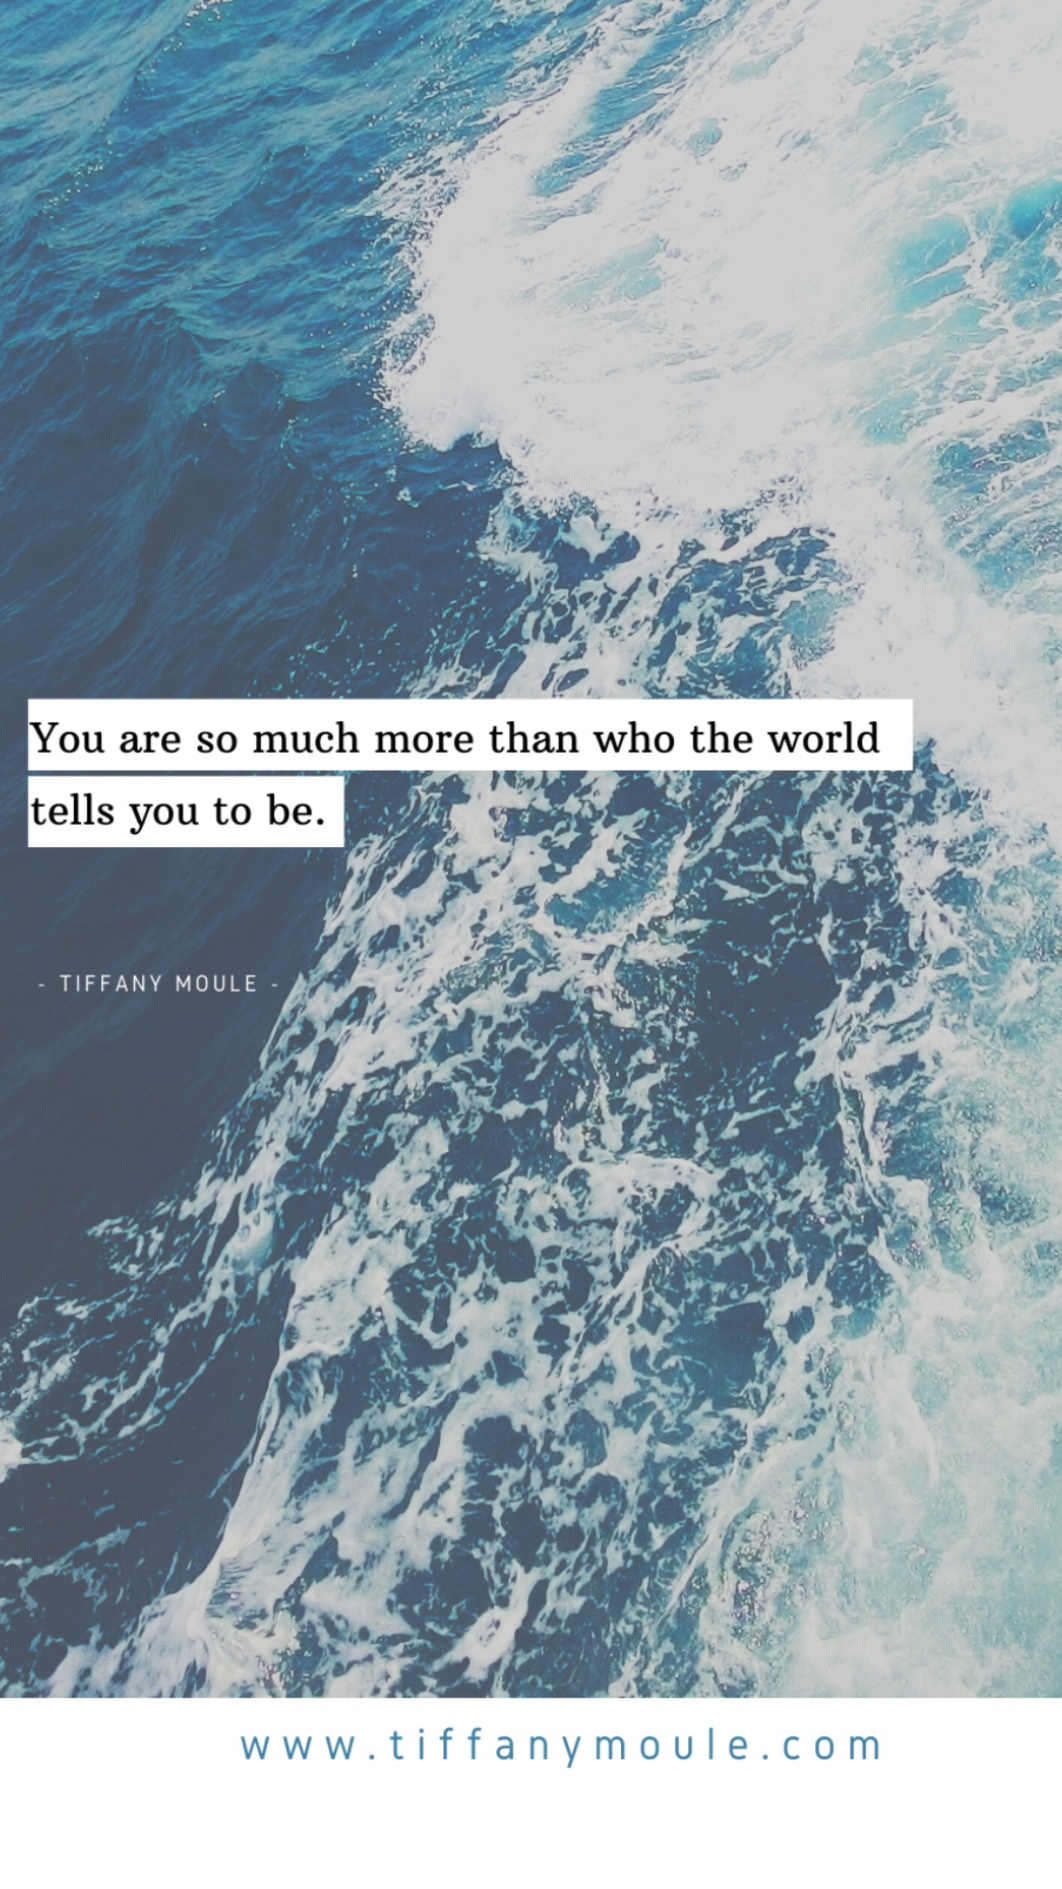 You are so much more than who the world tells you to be